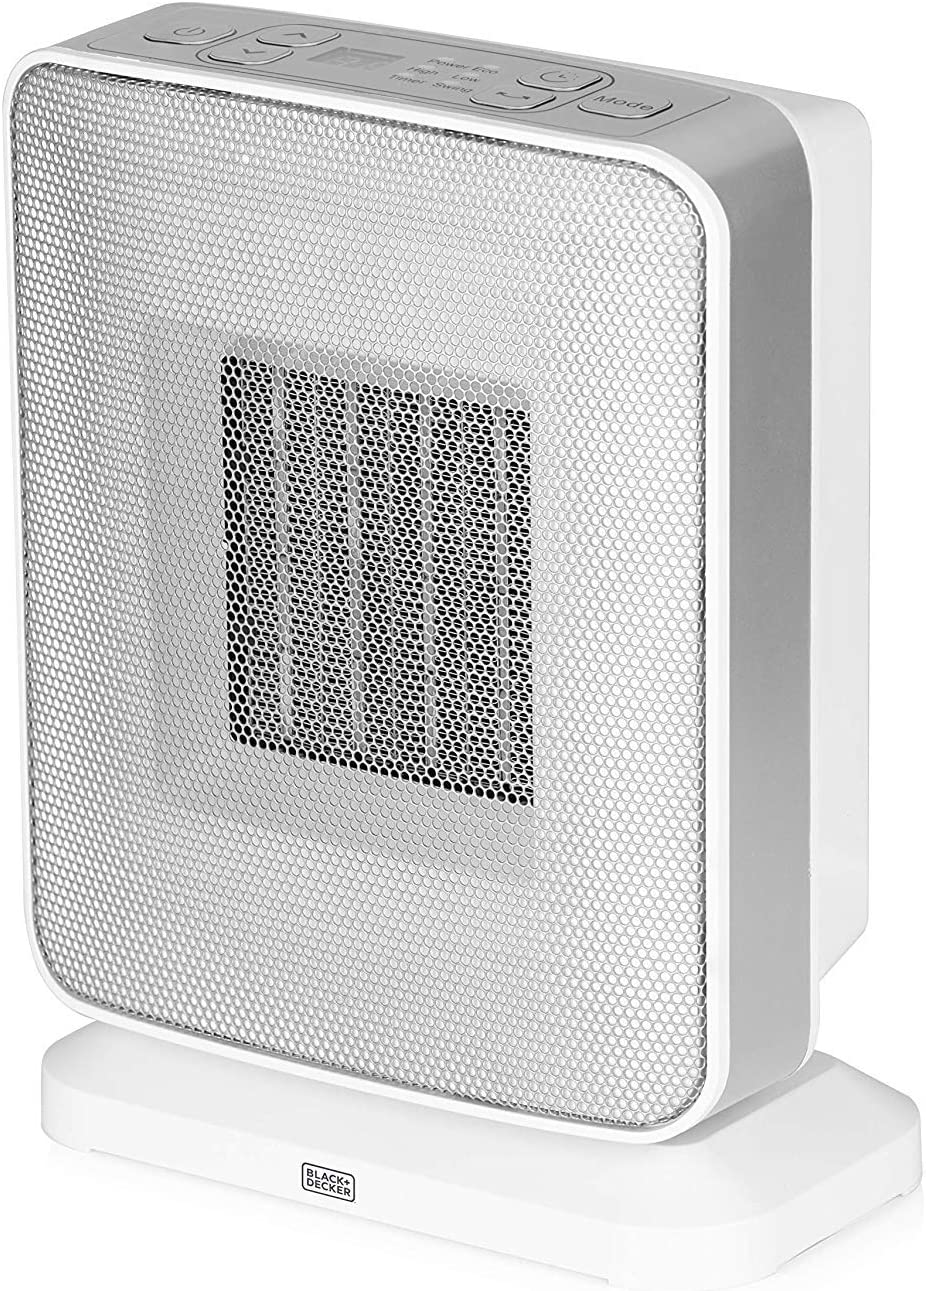 White BLACK+DECKER BXSH37001GB Ceramic Lightweight Portable Fan Heater with 360 Degree Distribution and 2 Heat Setting and Cool Air Blow Function 1500 W